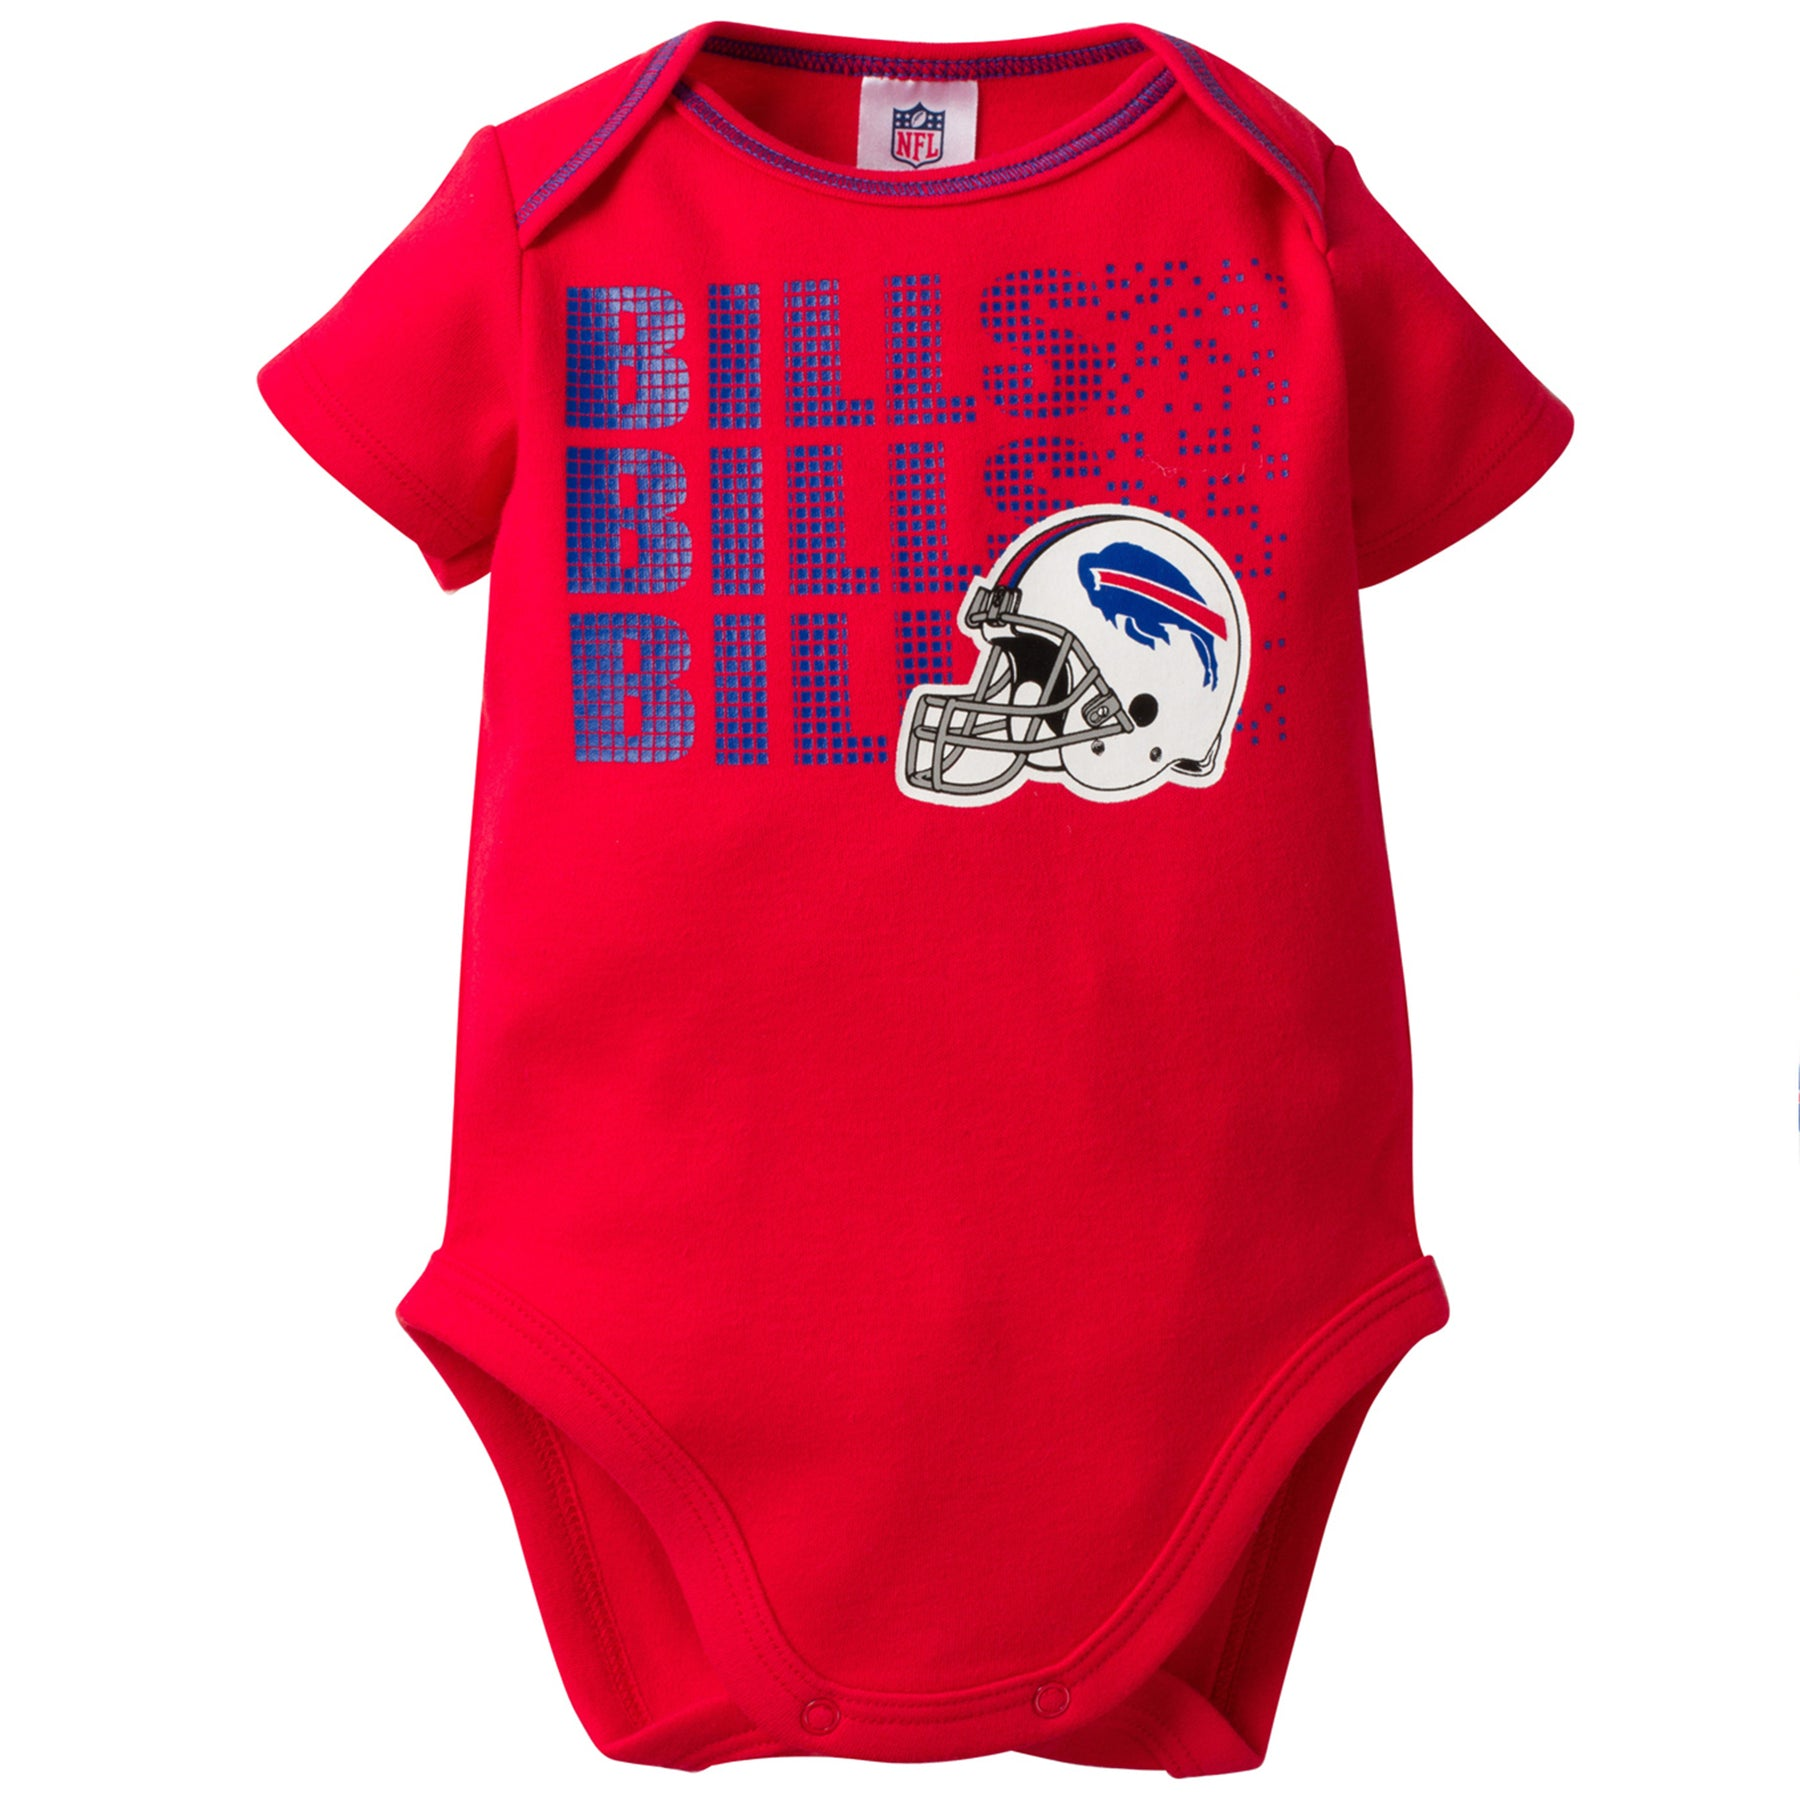 Bills Baby 3 Pack Short Sleeve Onesies - babyfans